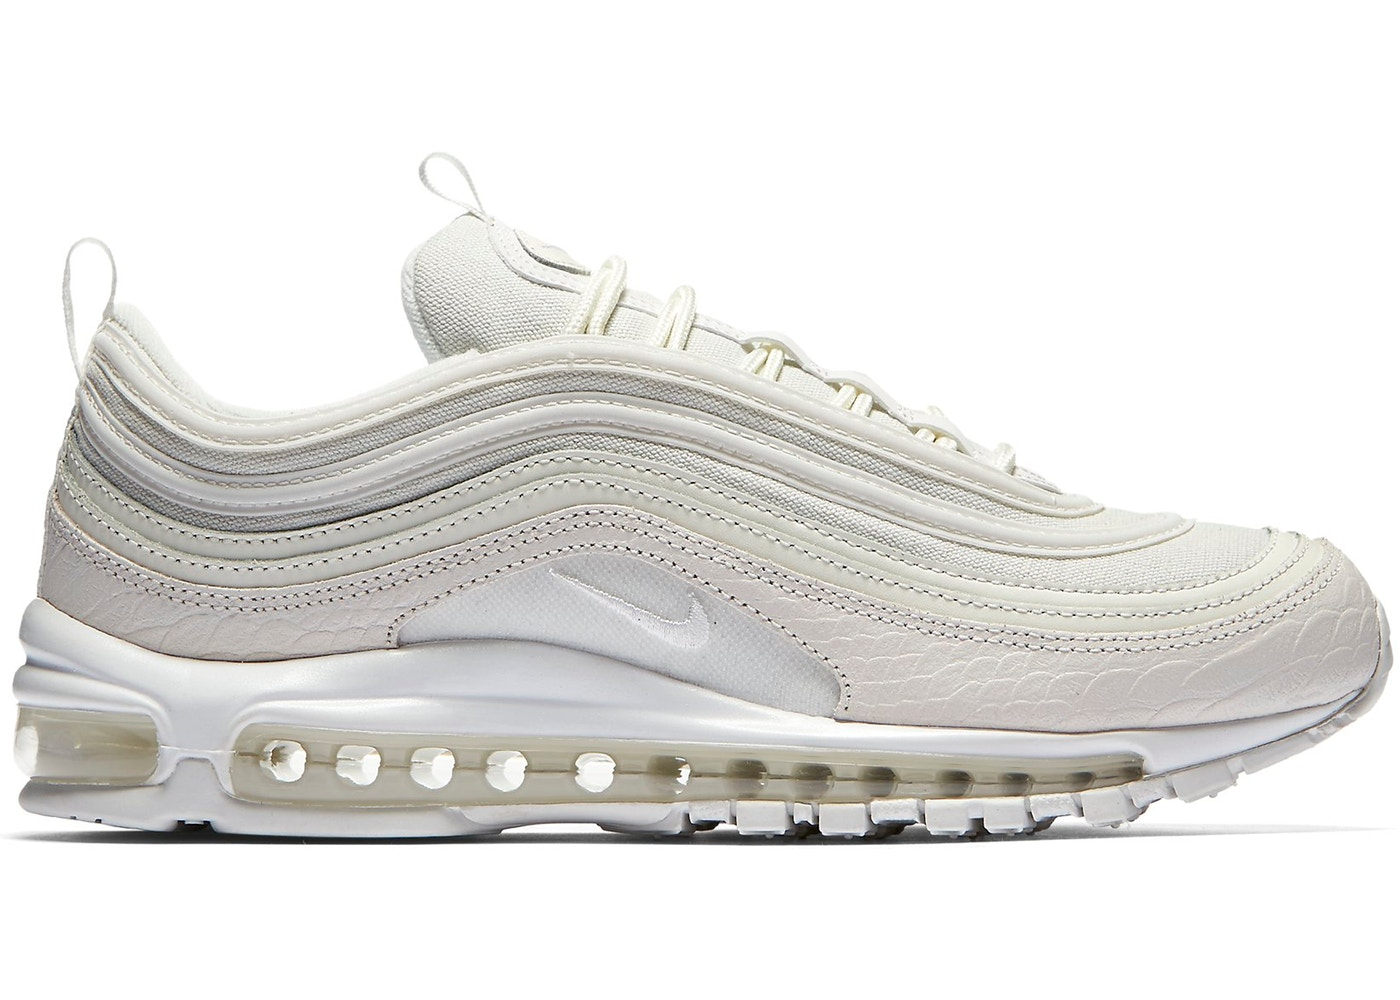 Nike Air Max 97 Ultra Pink & Other Stories